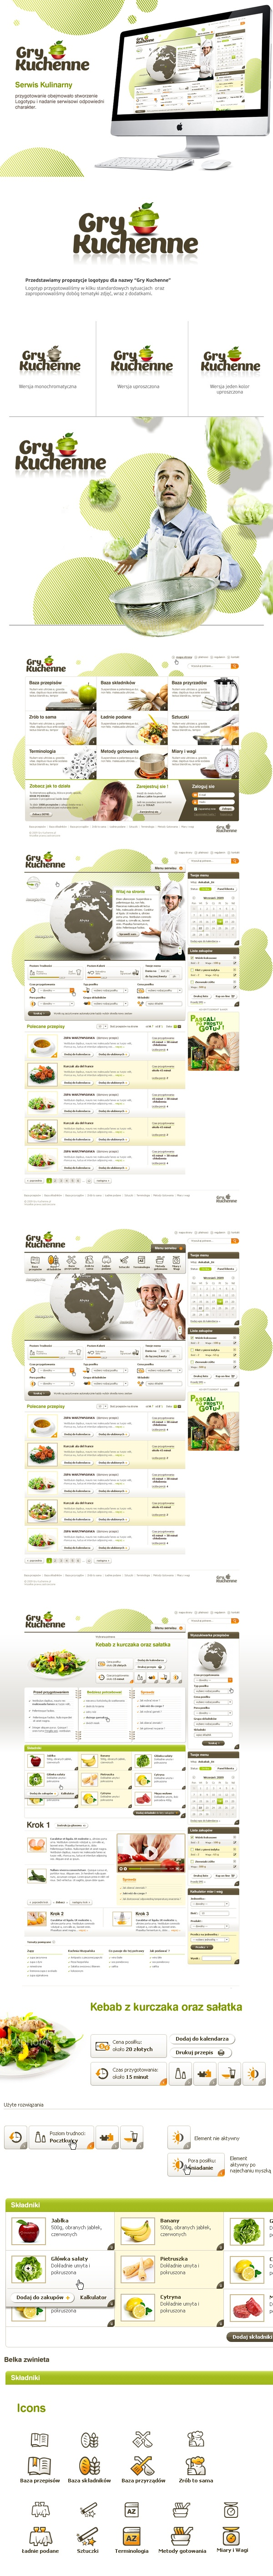 | #webdesign #it #web #design #layout #userinterface #website #webdesign <<< repinned by an #advertising #agency from #Hamburg / #Germany - www.BlickeDeeler.de | Follow us on www.facebook.com/BlickeDeeler